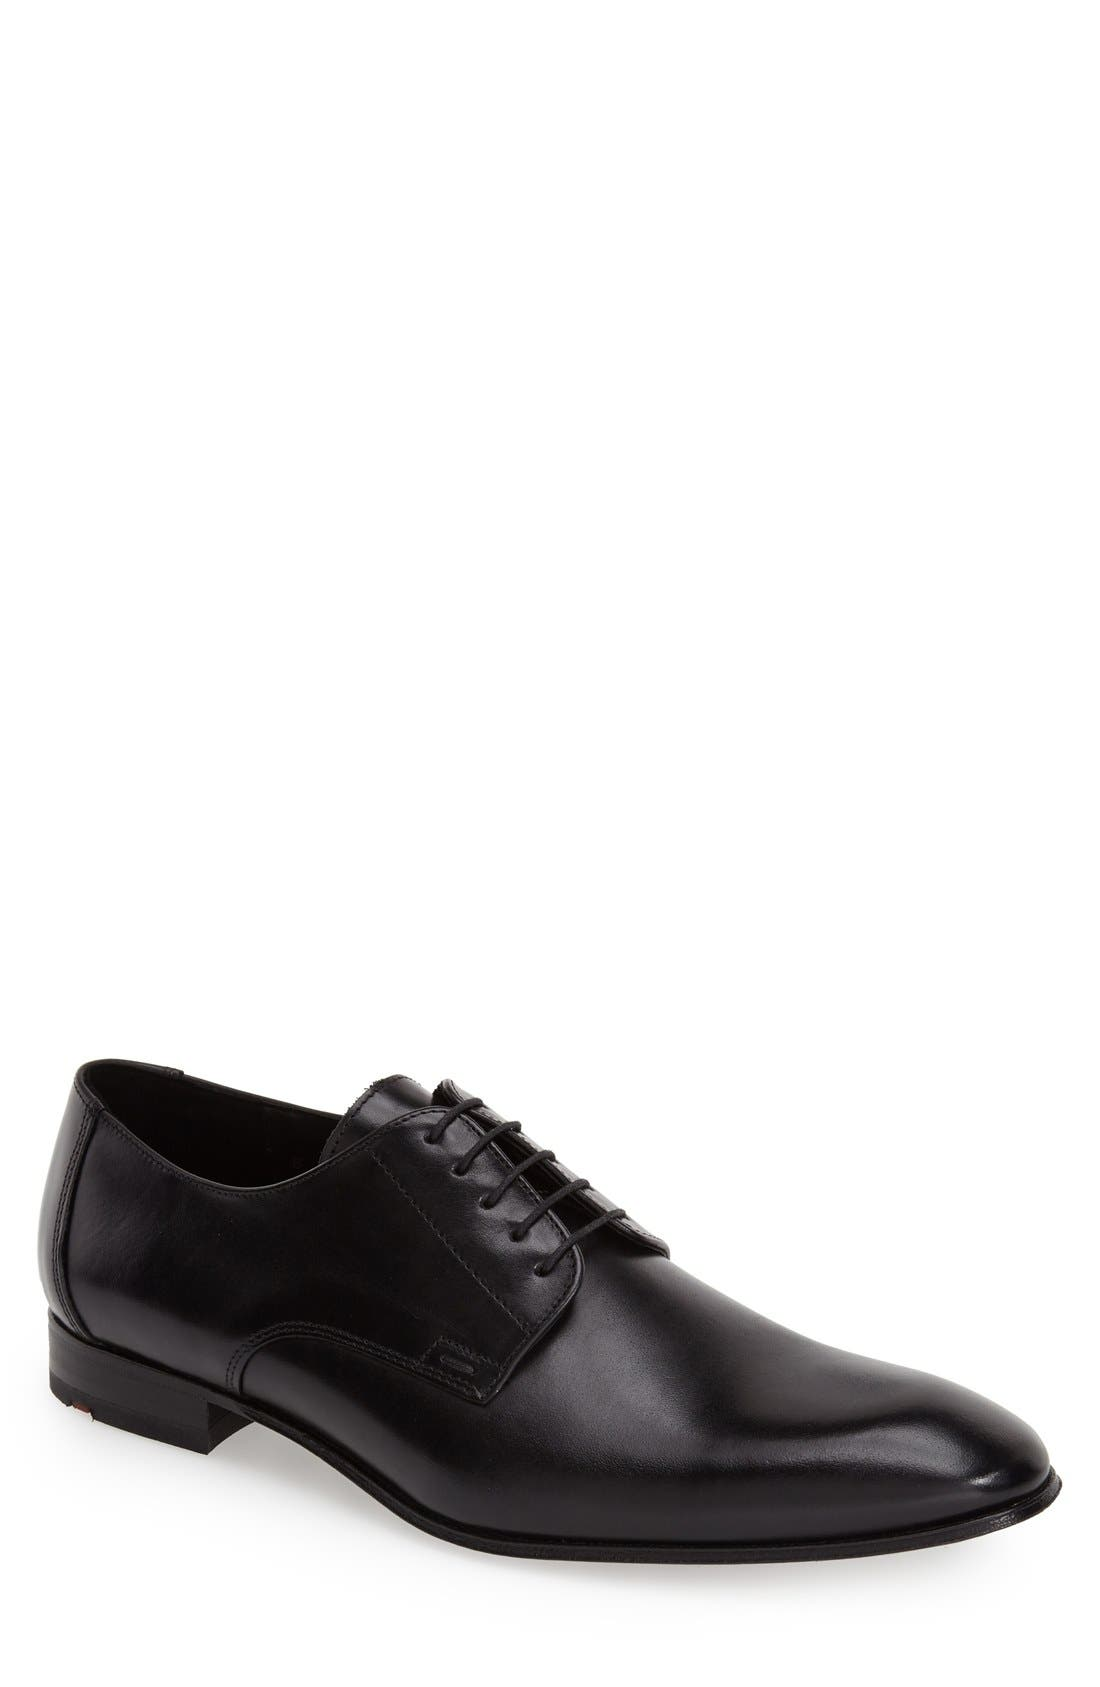 'Laurin' Plain Toe Derby,                         Main,                         color, Black